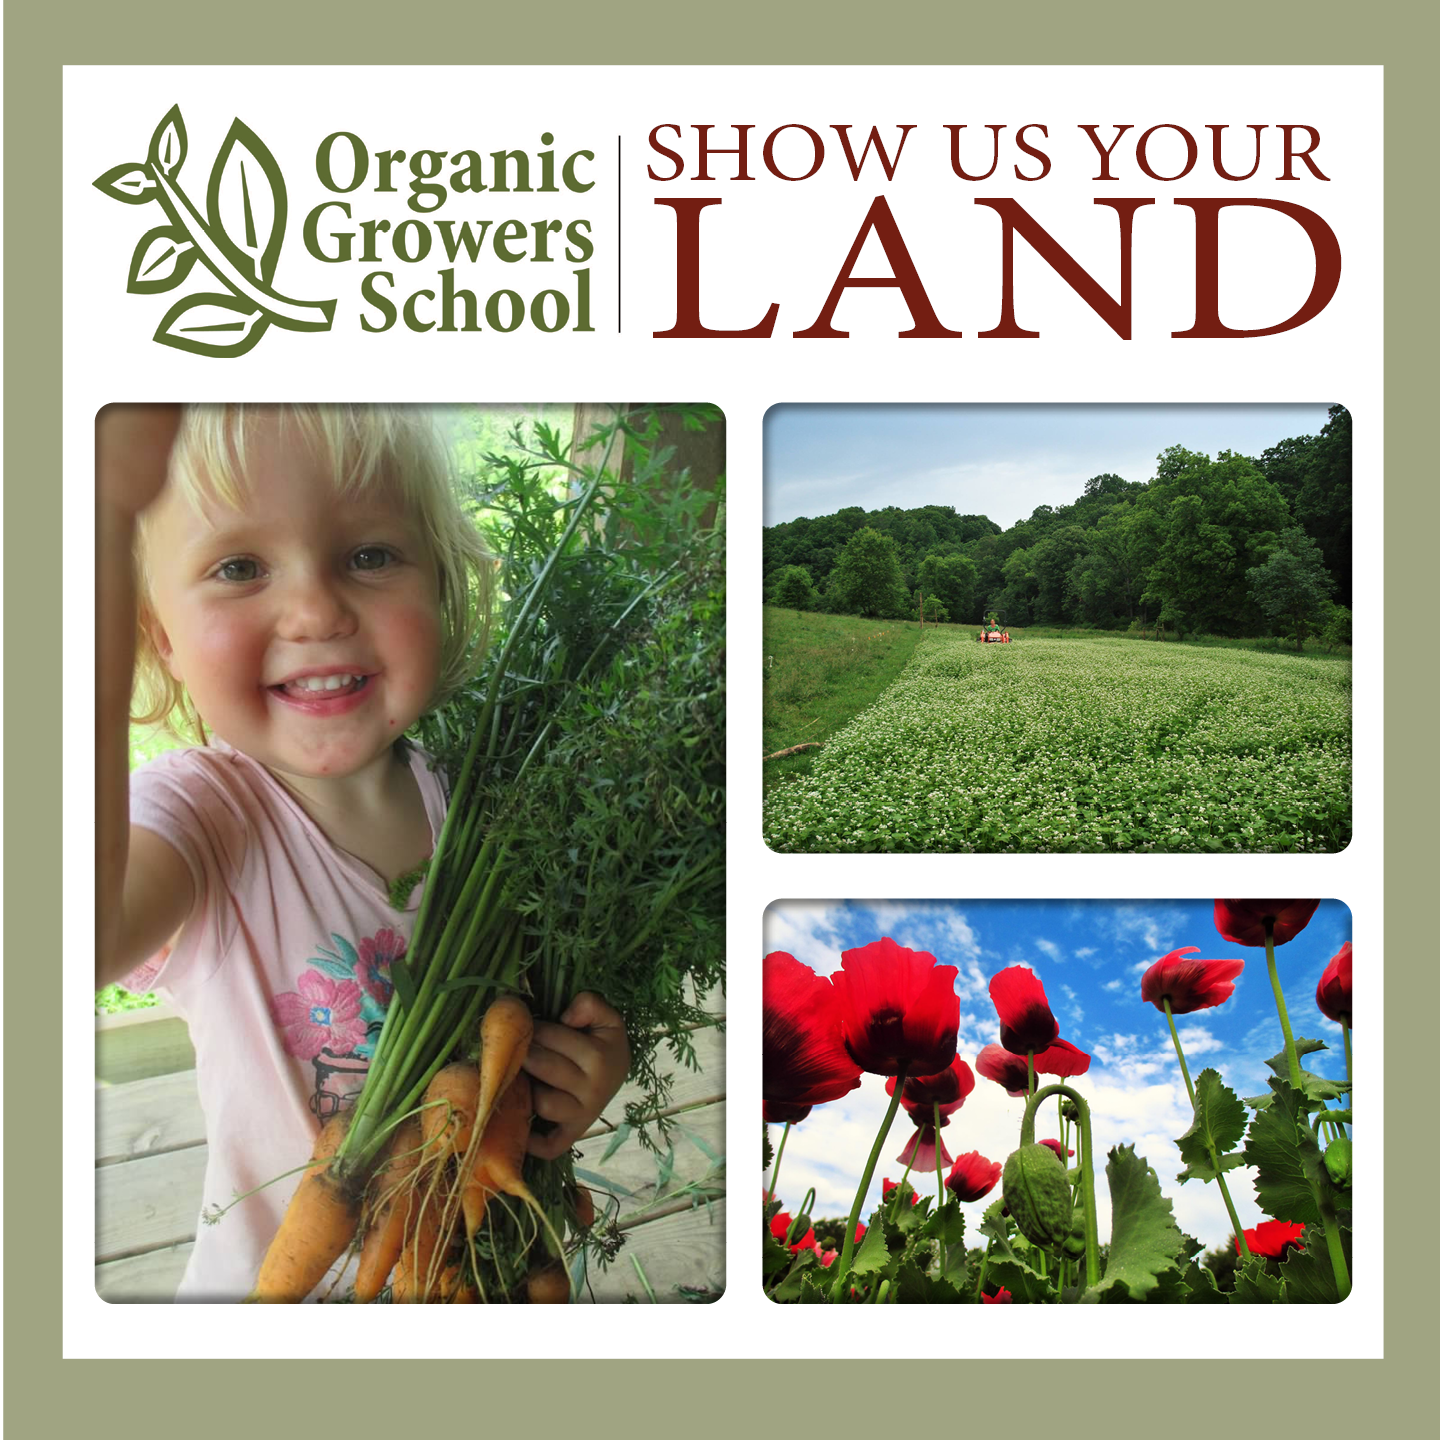 show us your land collage